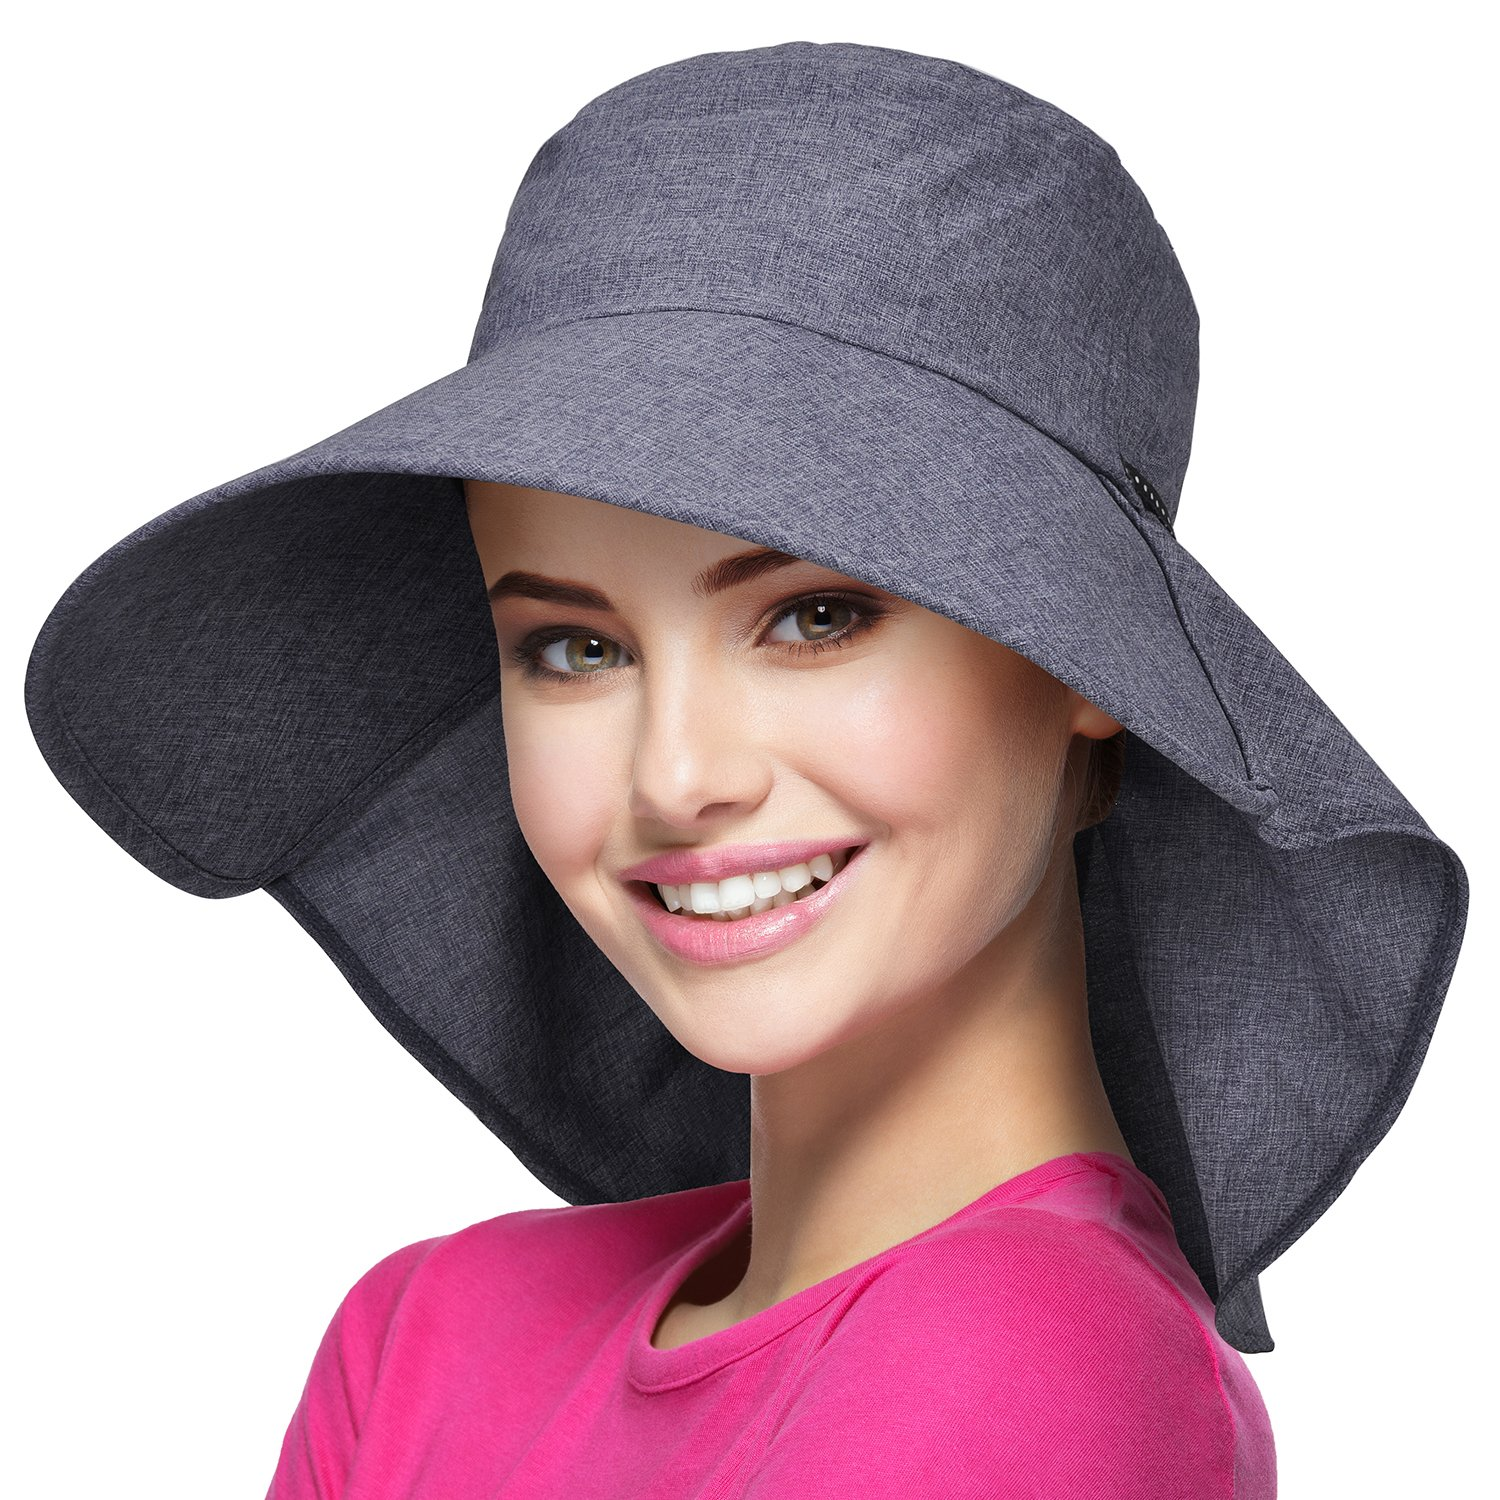 Womens Wide Brim Sun Protection Hat w/Flap Neck Cover for Summer Safari Hiking